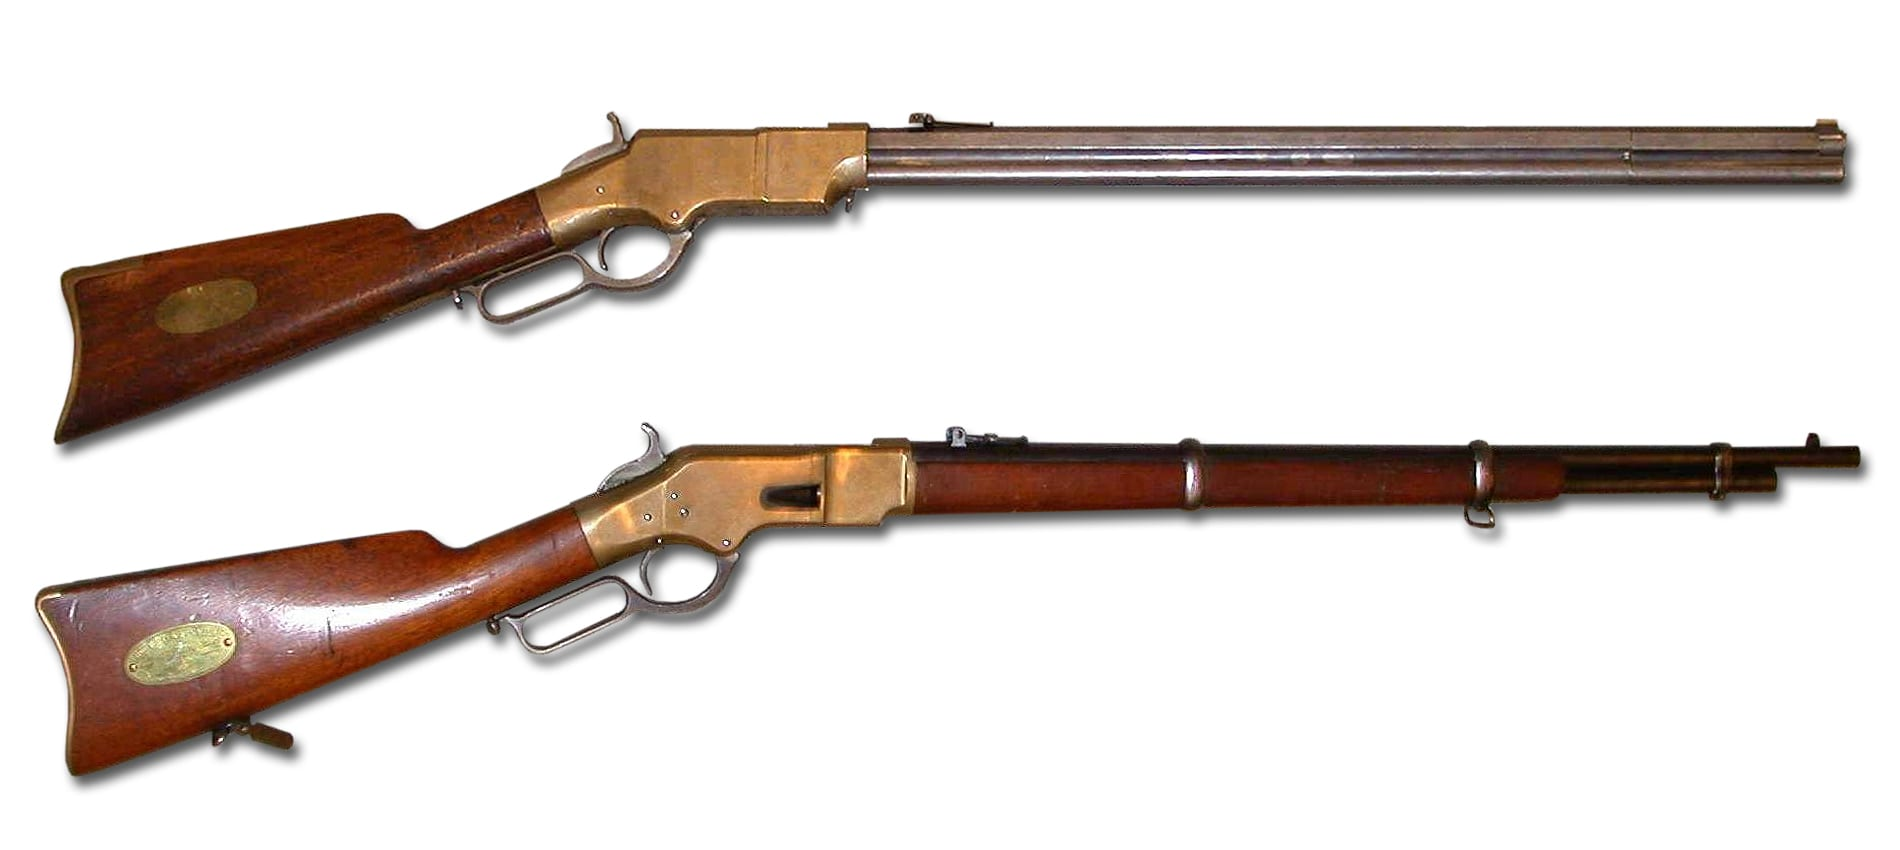 An early Henry Rifle and a Winchester Mod 1866 Rifle, both .44 caliber Rimfire